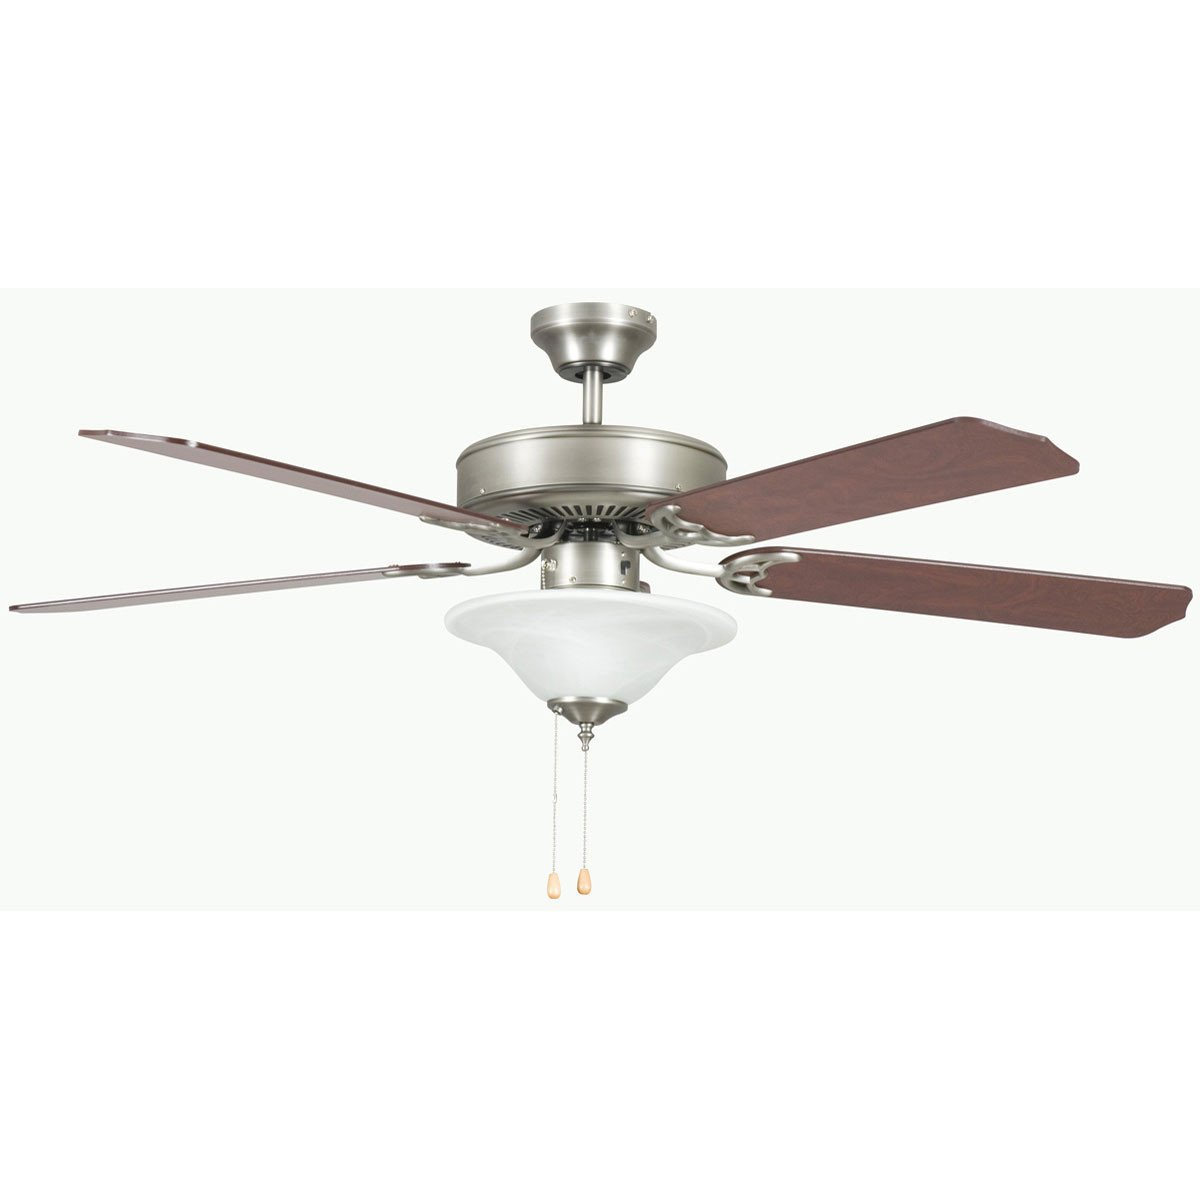 "Concord Fans 52"" Heritage Square Satin Nickel Ceiling Fan with Light Kit"